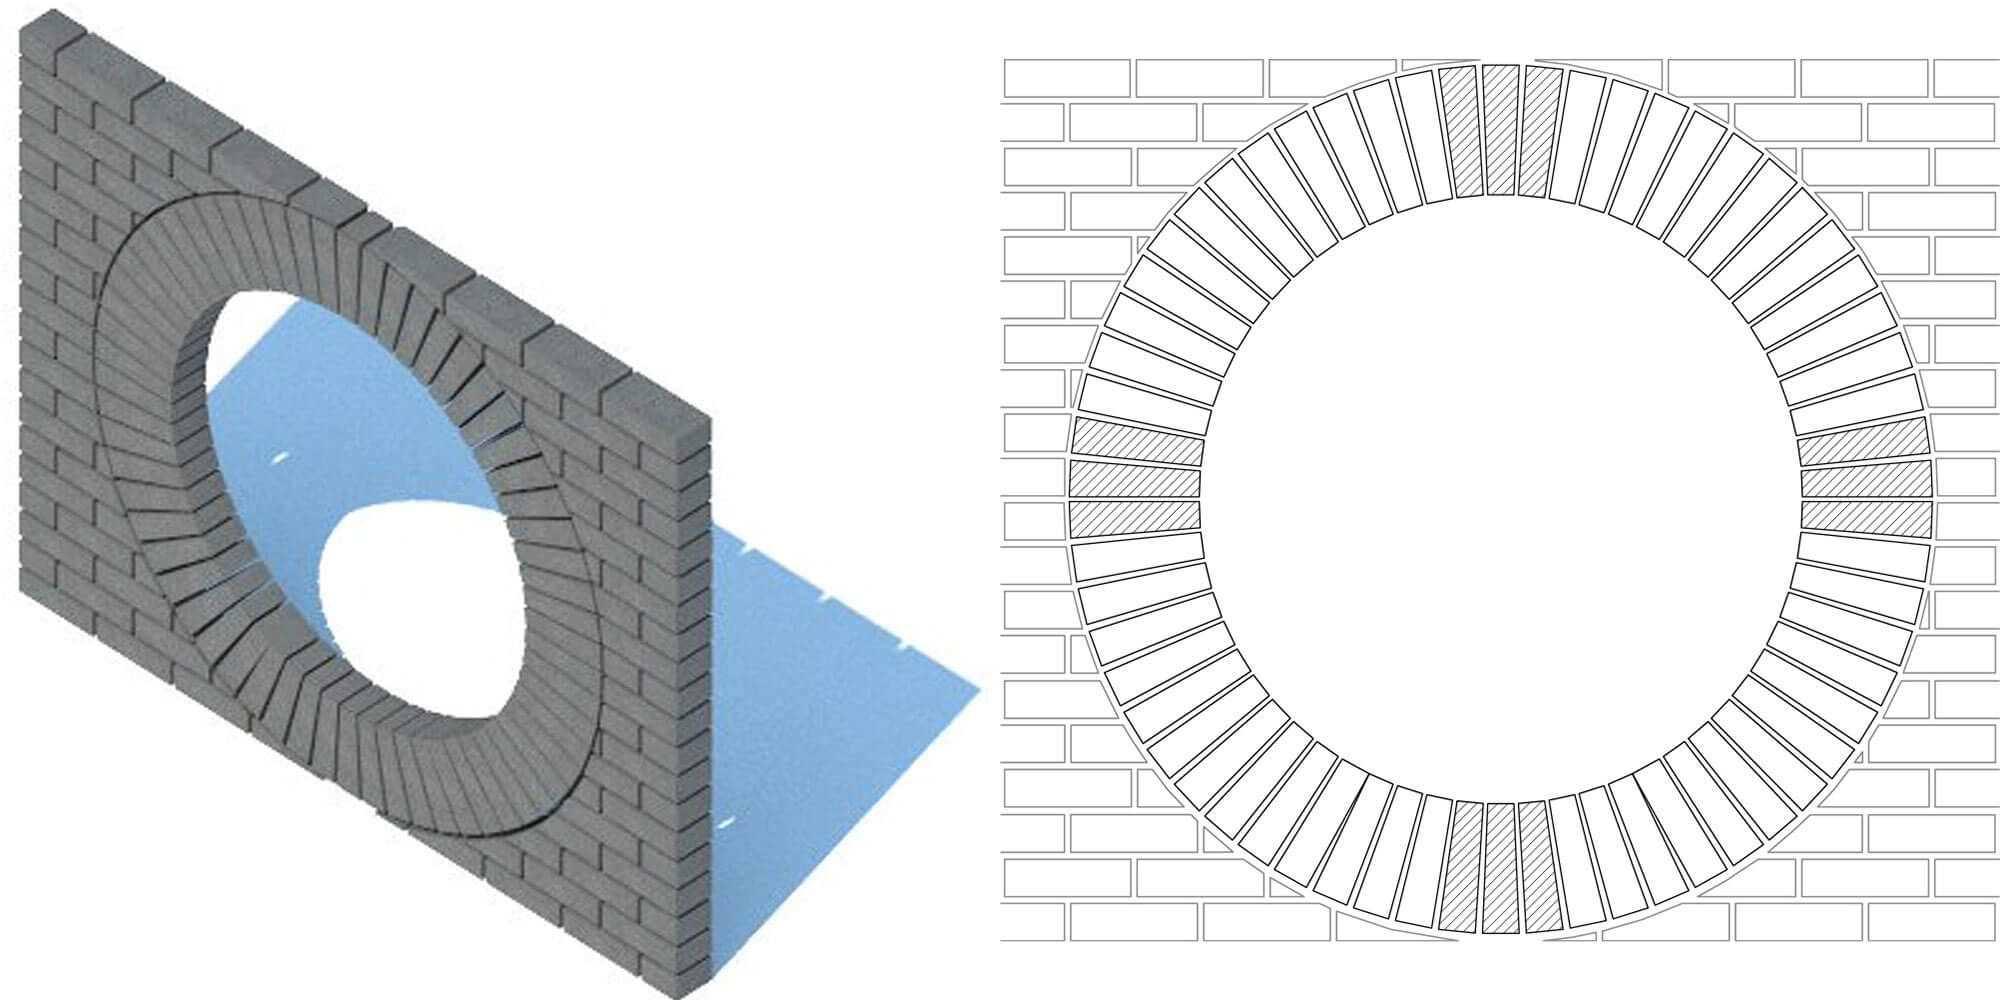 Figure 3.5 Bullseye Arch scale 1 20 elevation